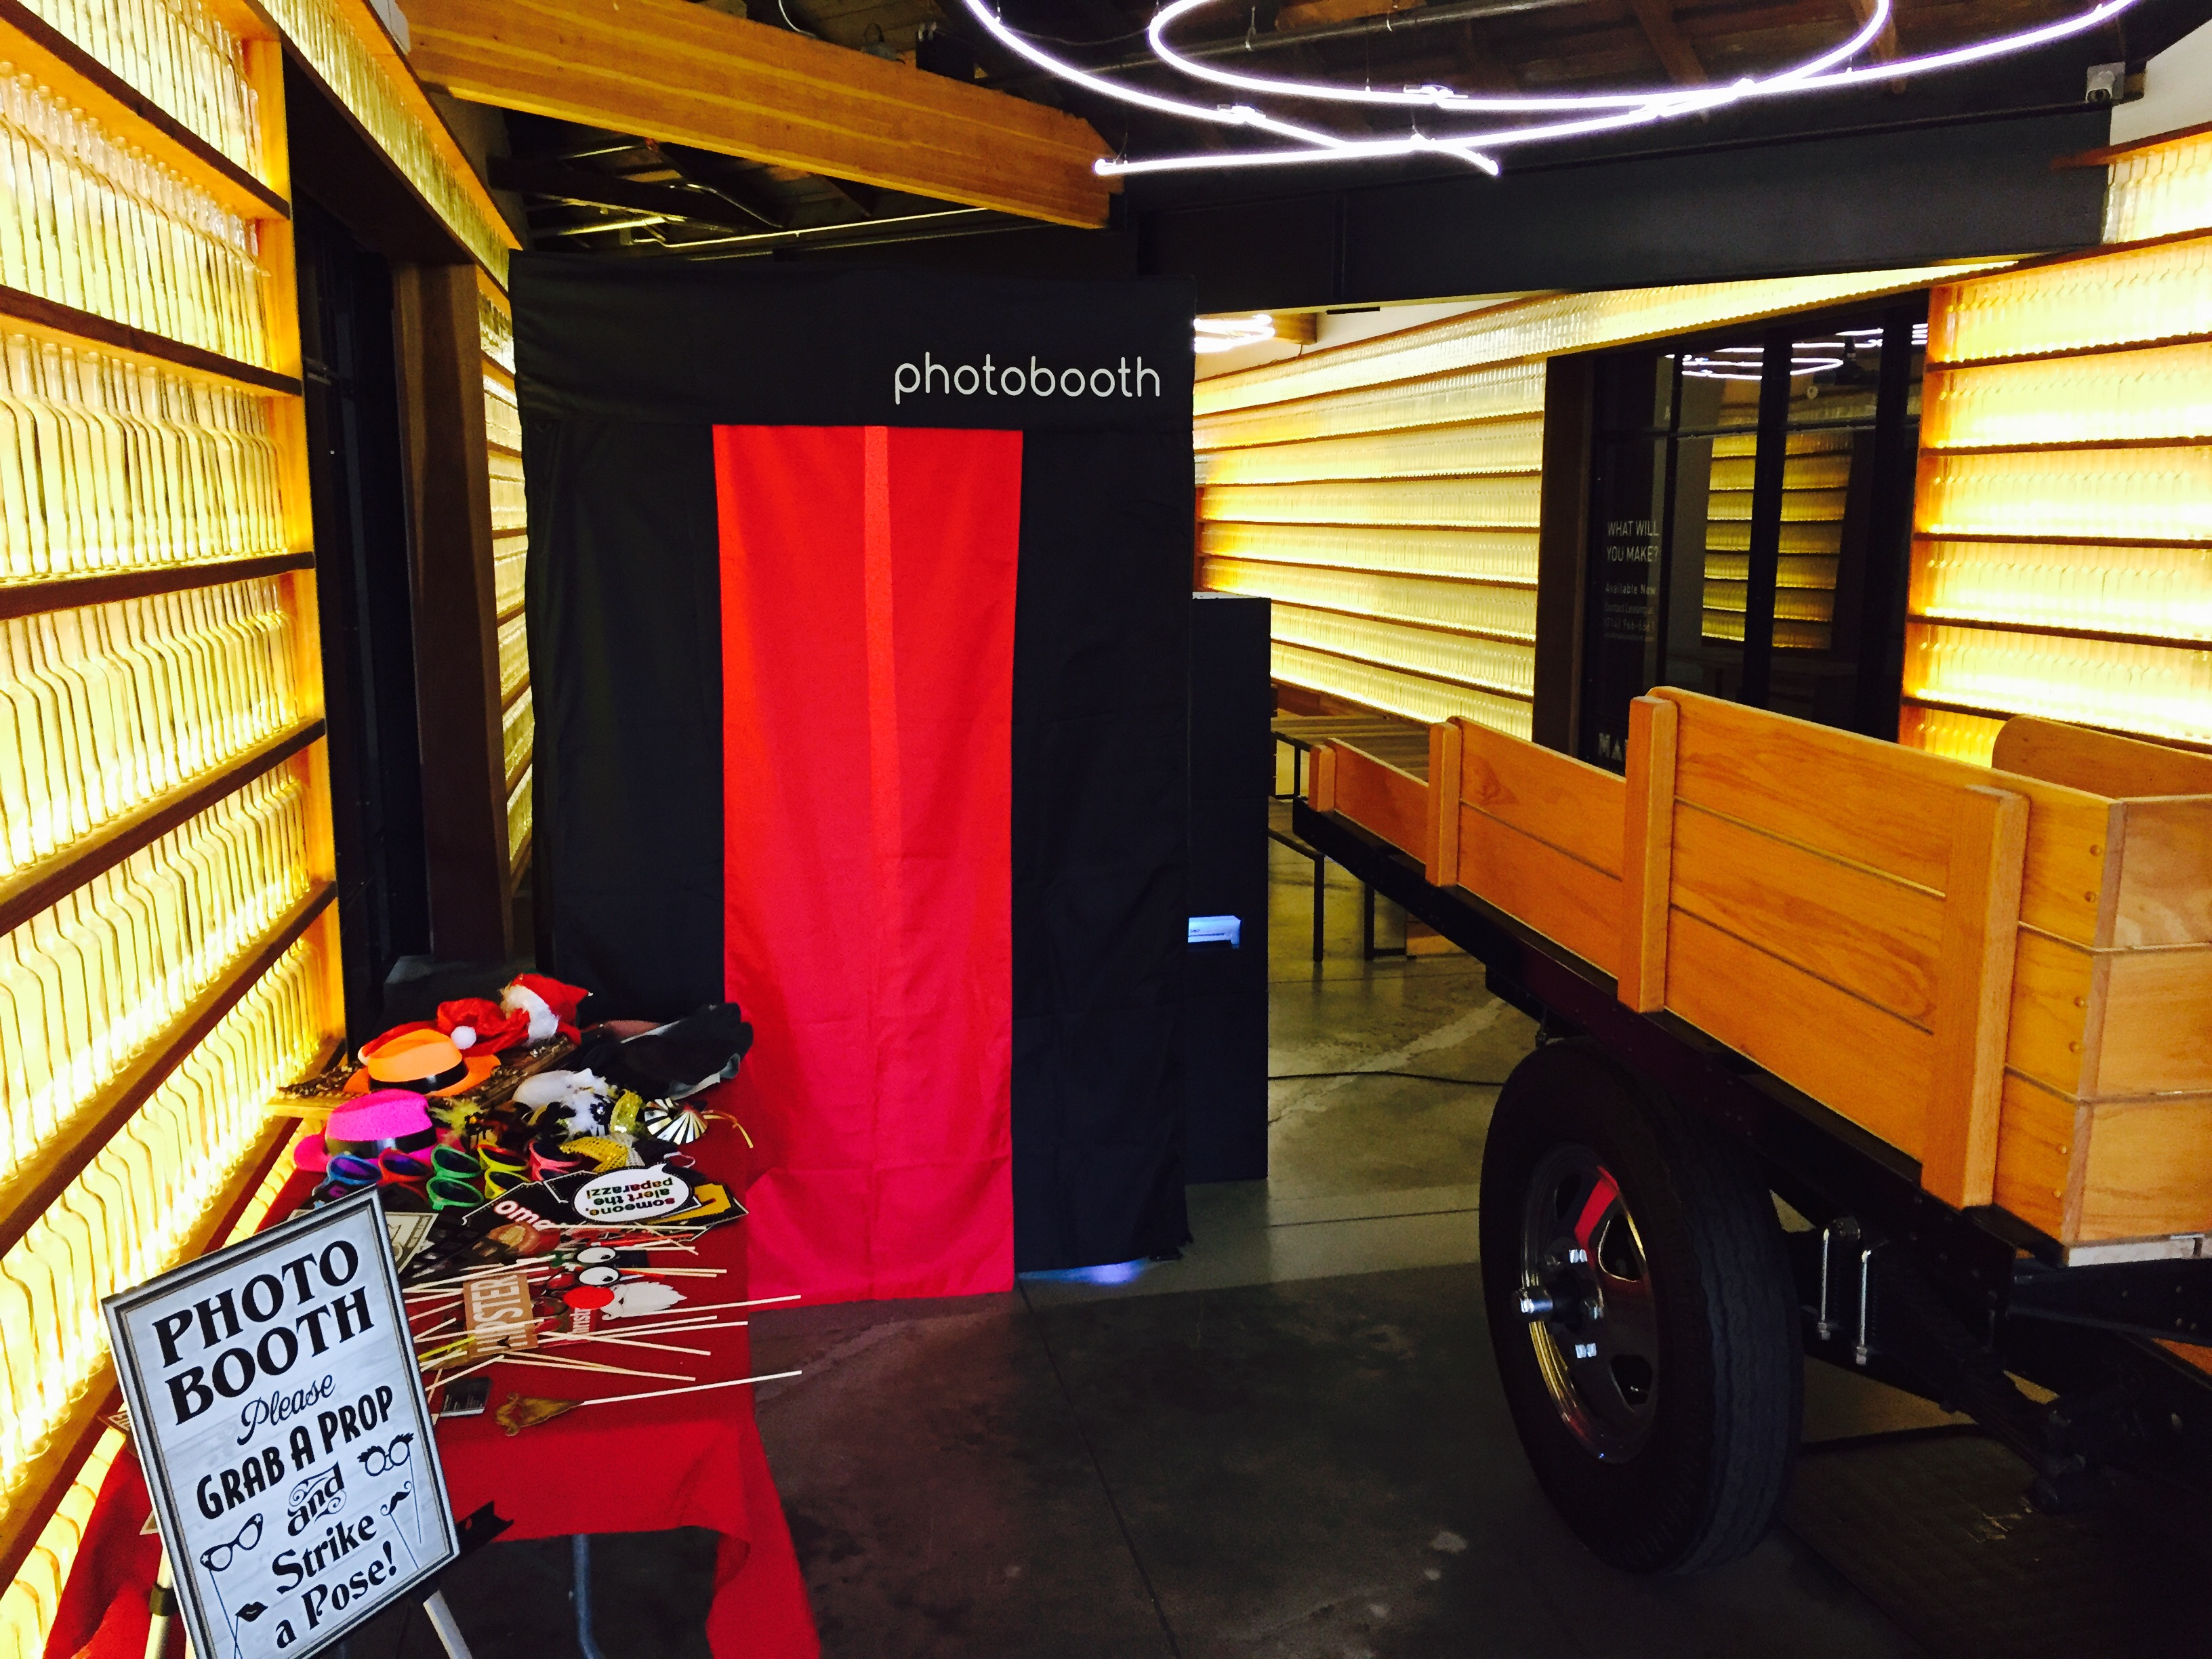 Enclosed Photo Booth Set up, Last Night's PhotoBooth